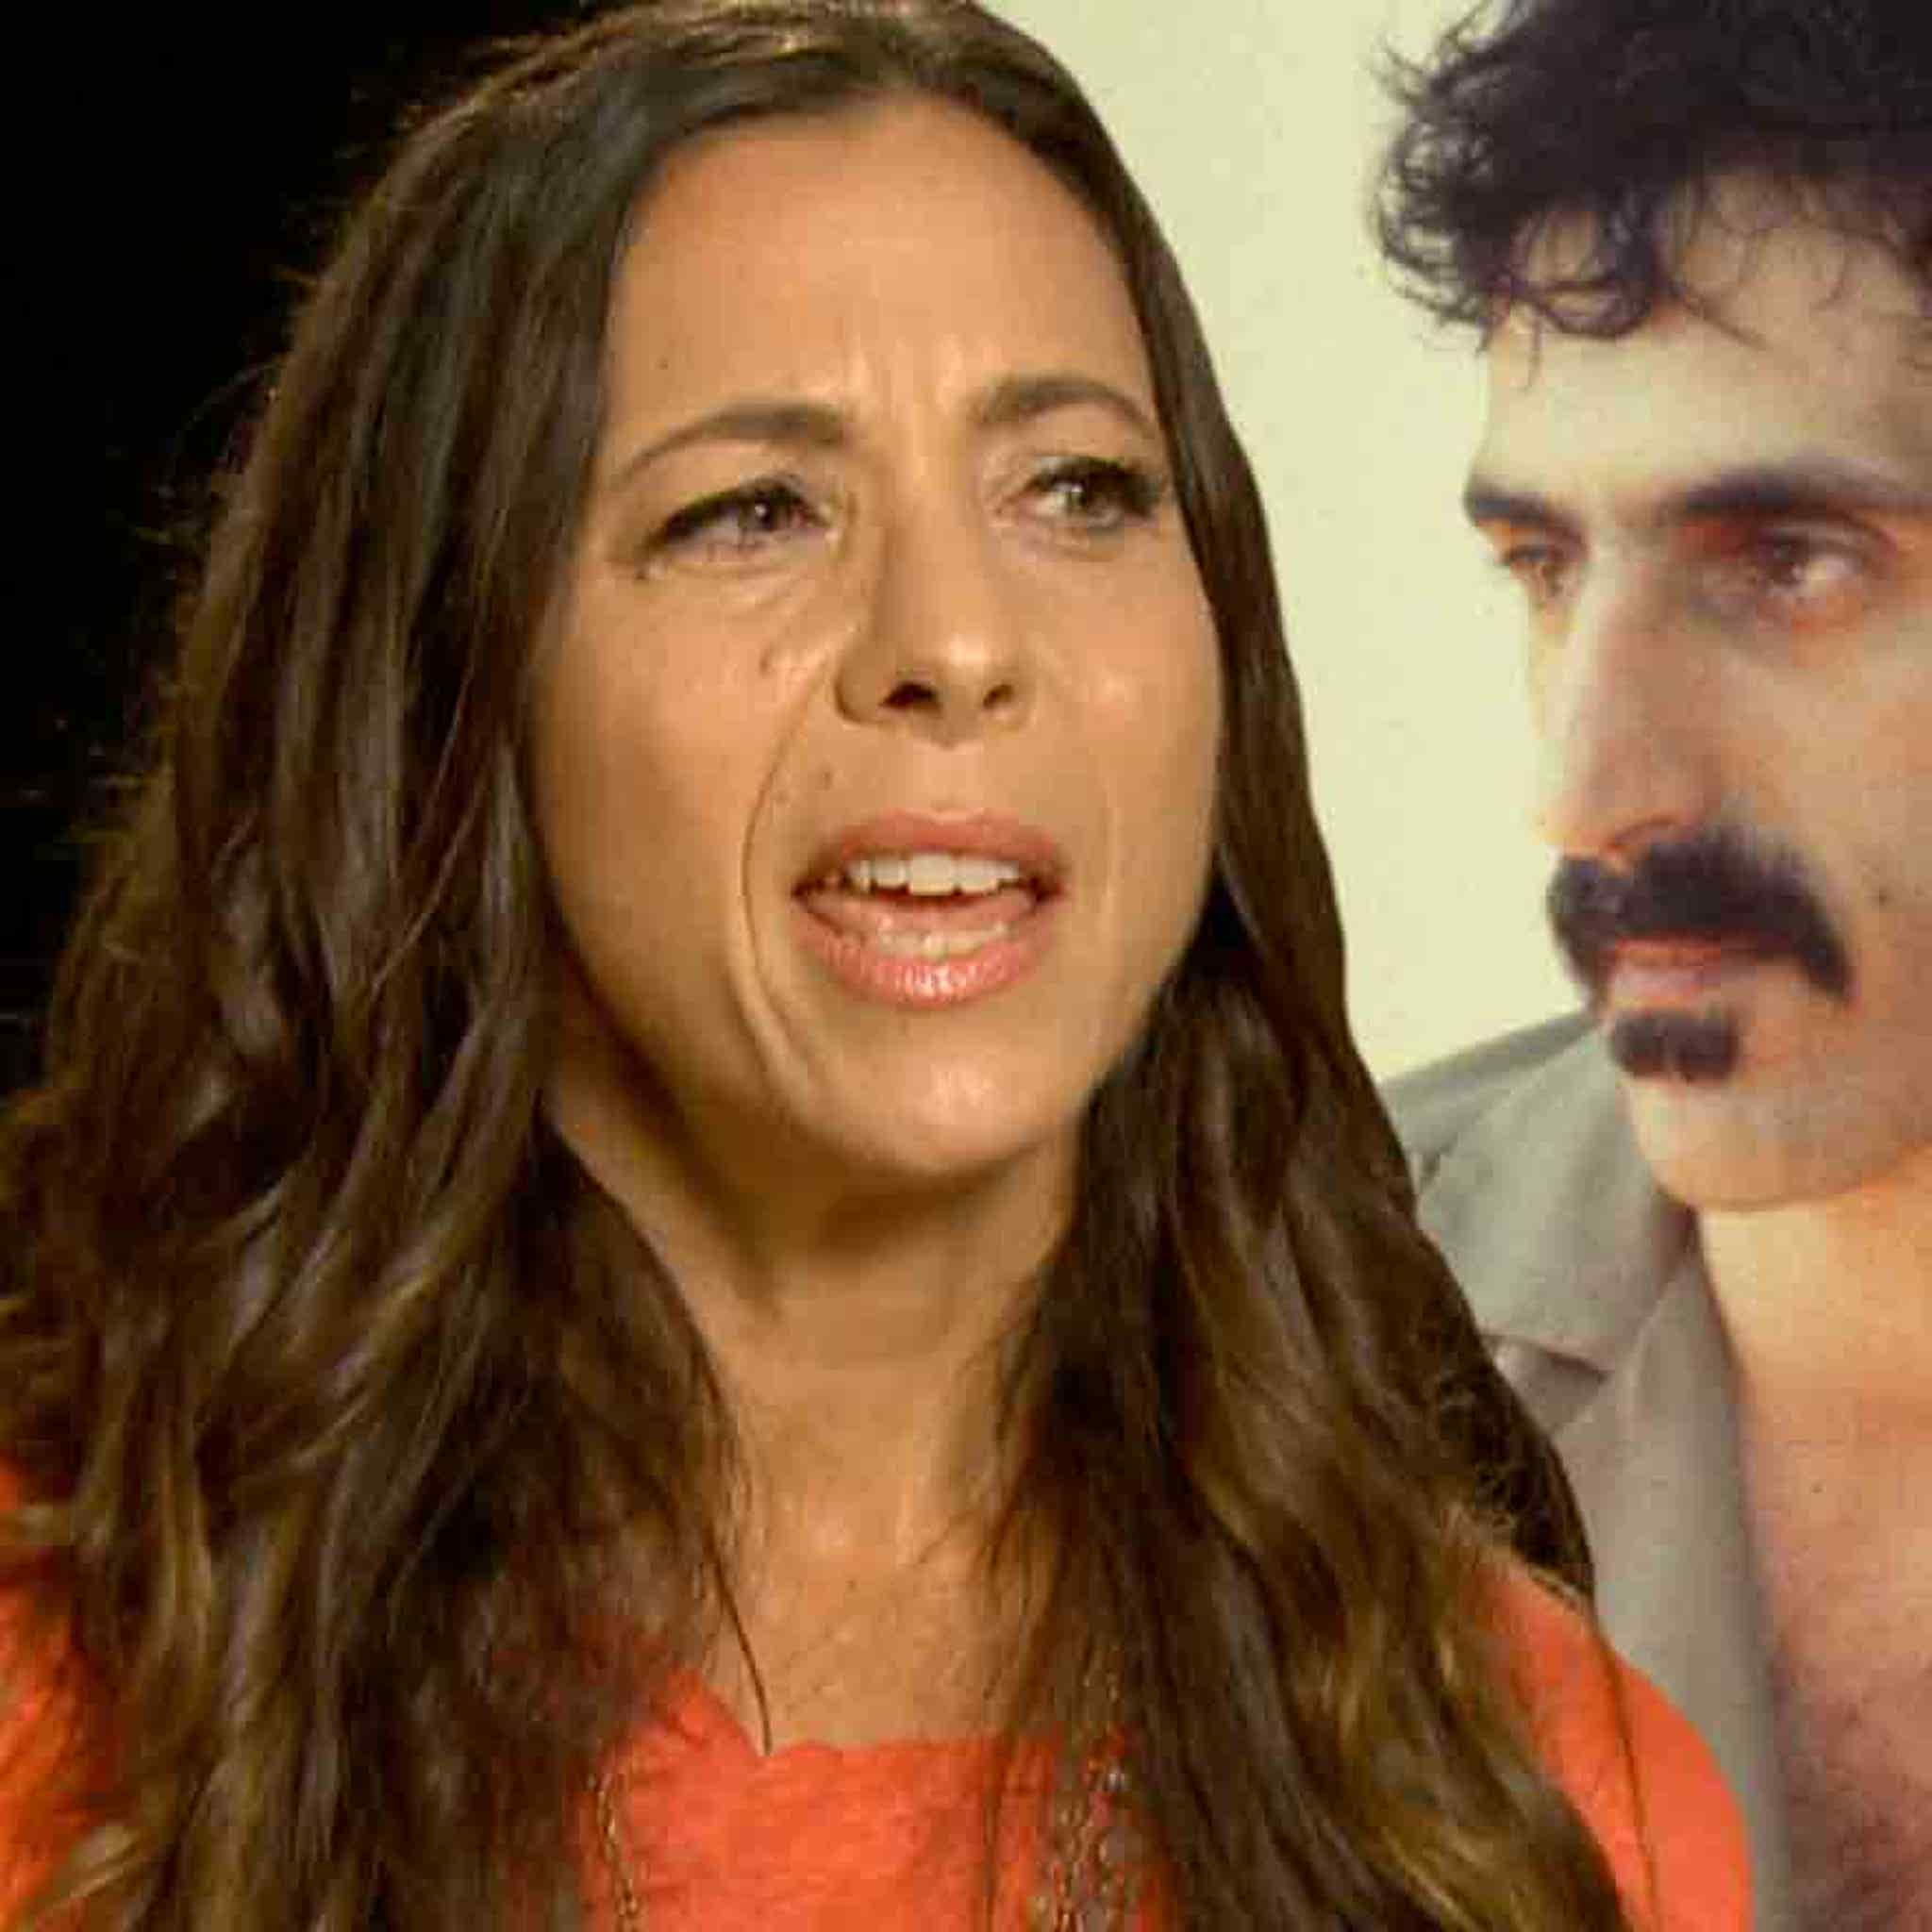 Moon Zappa Gets Restraining Order Against 'Delusional Fanatic'